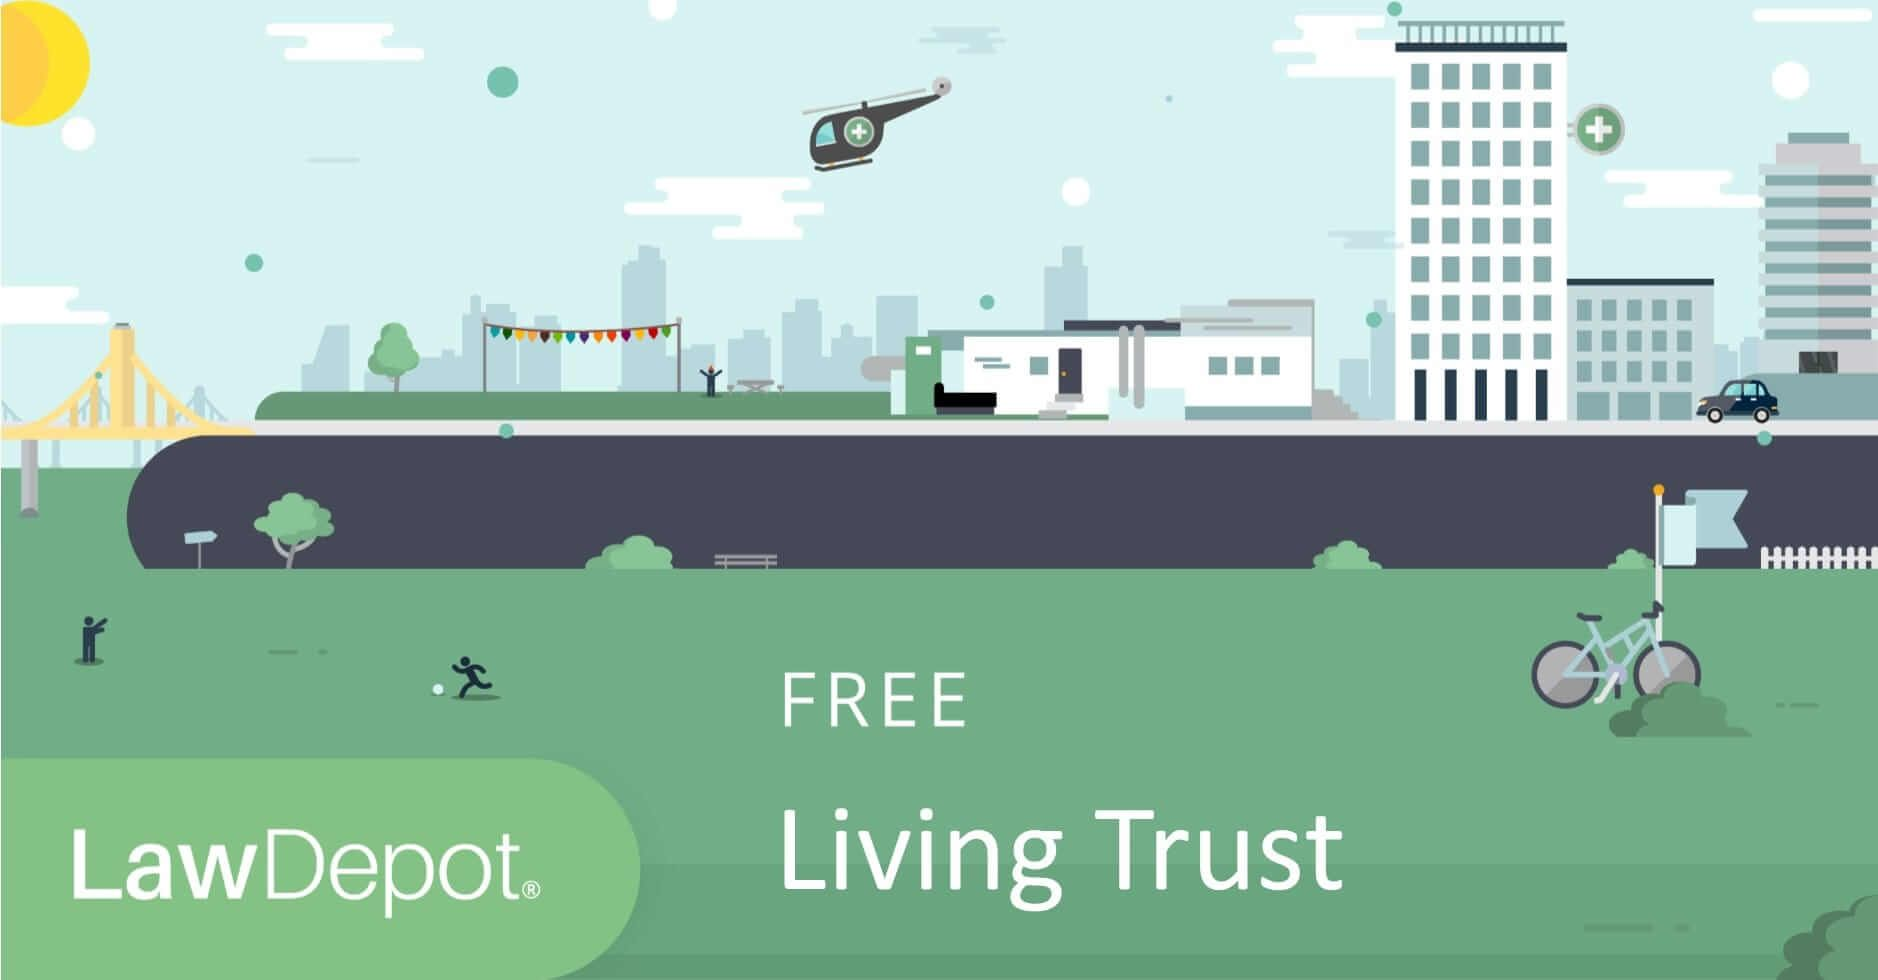 customize print and download your free revocable living trust in